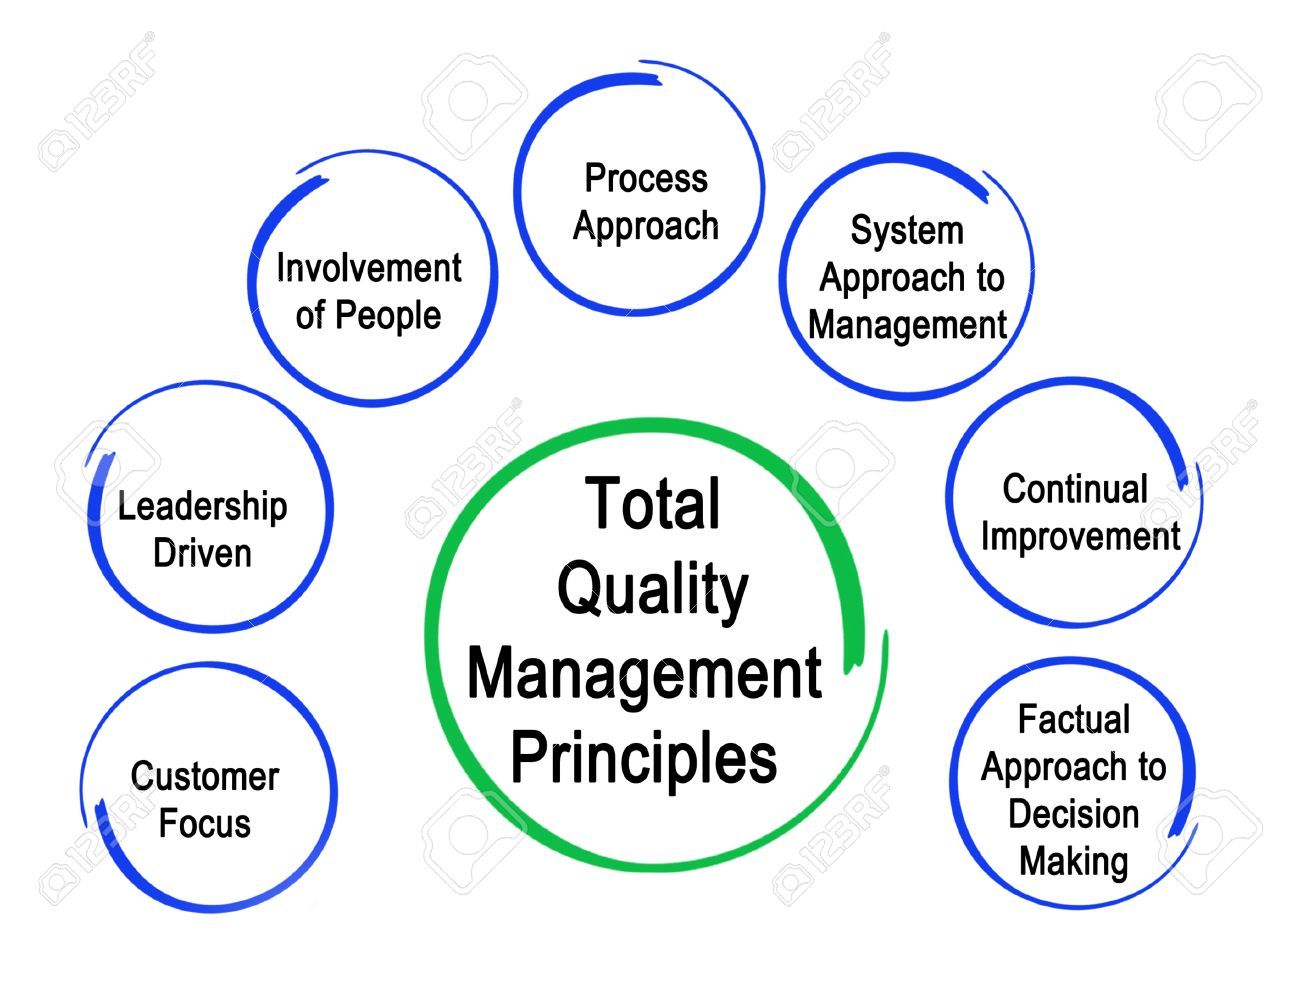 What is Total Quality Management (TQM)?